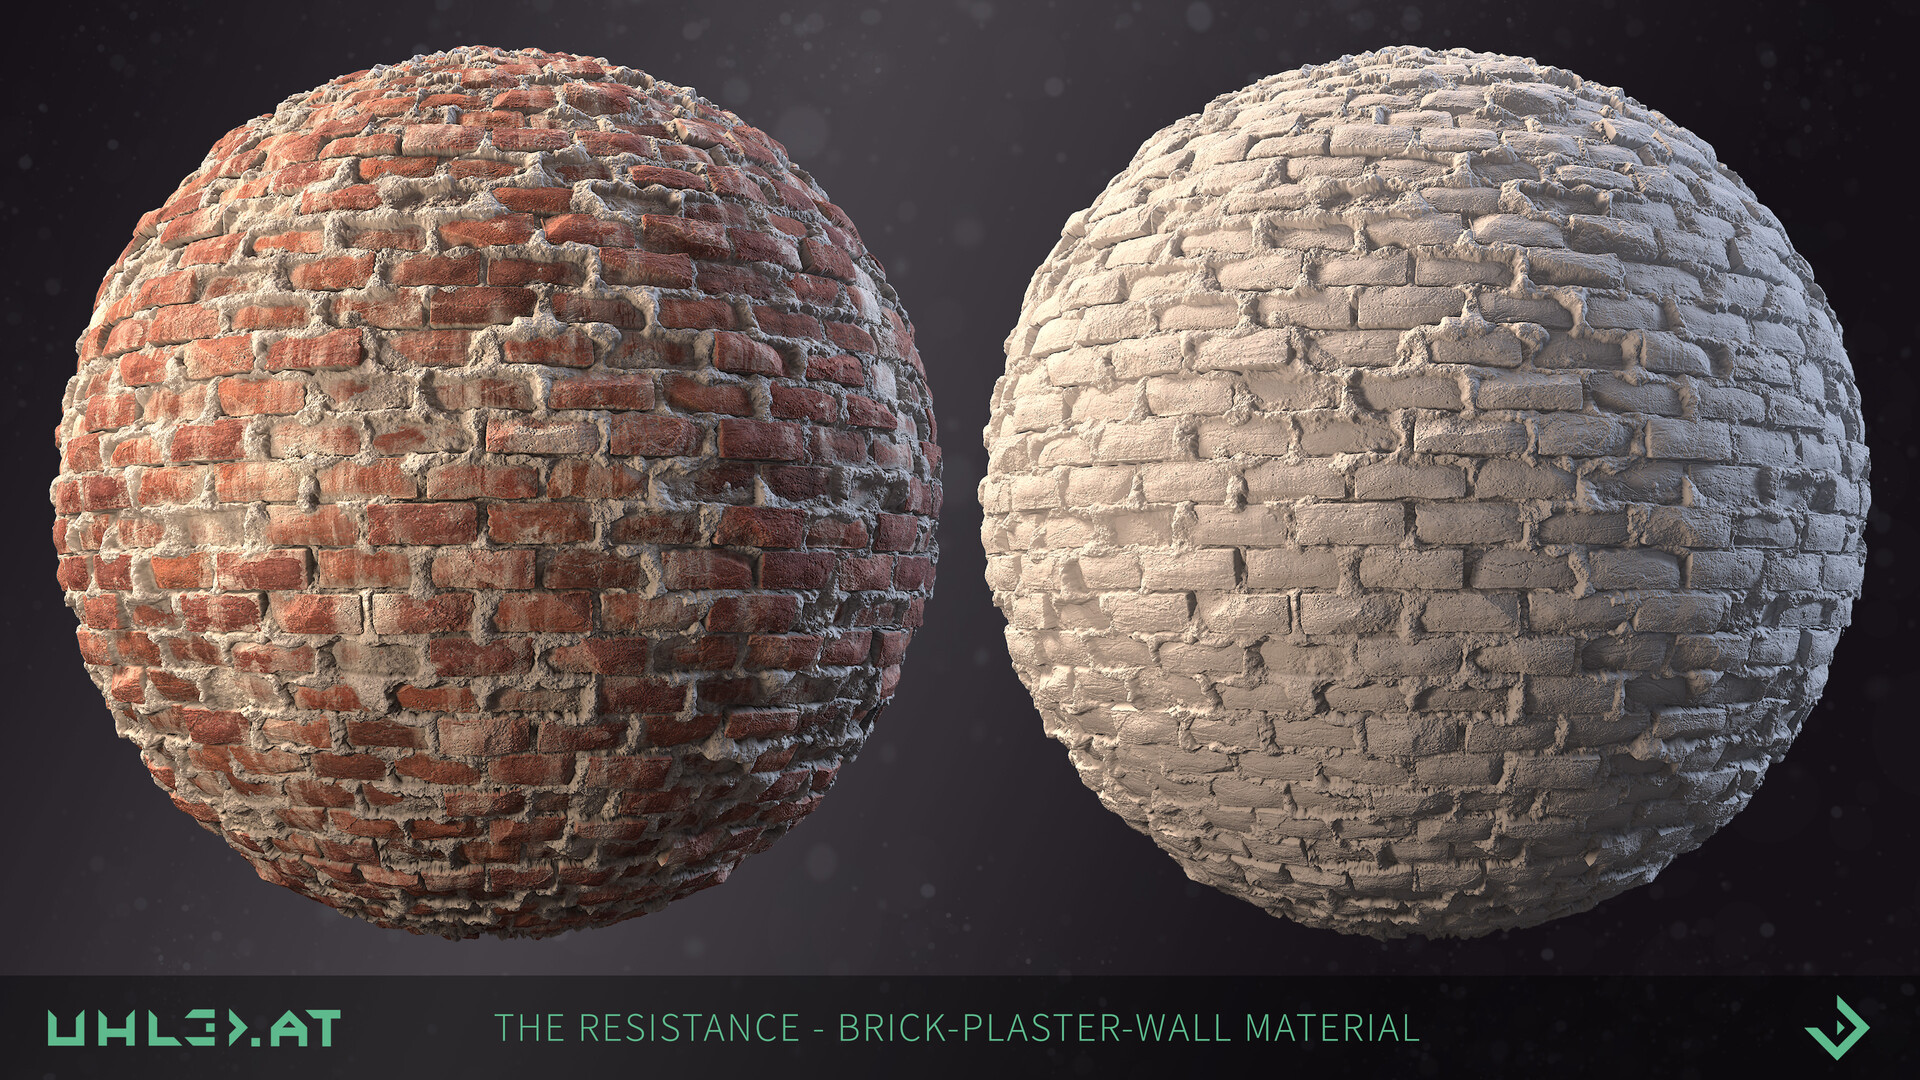 Dominik uhl the resistance brick material 01